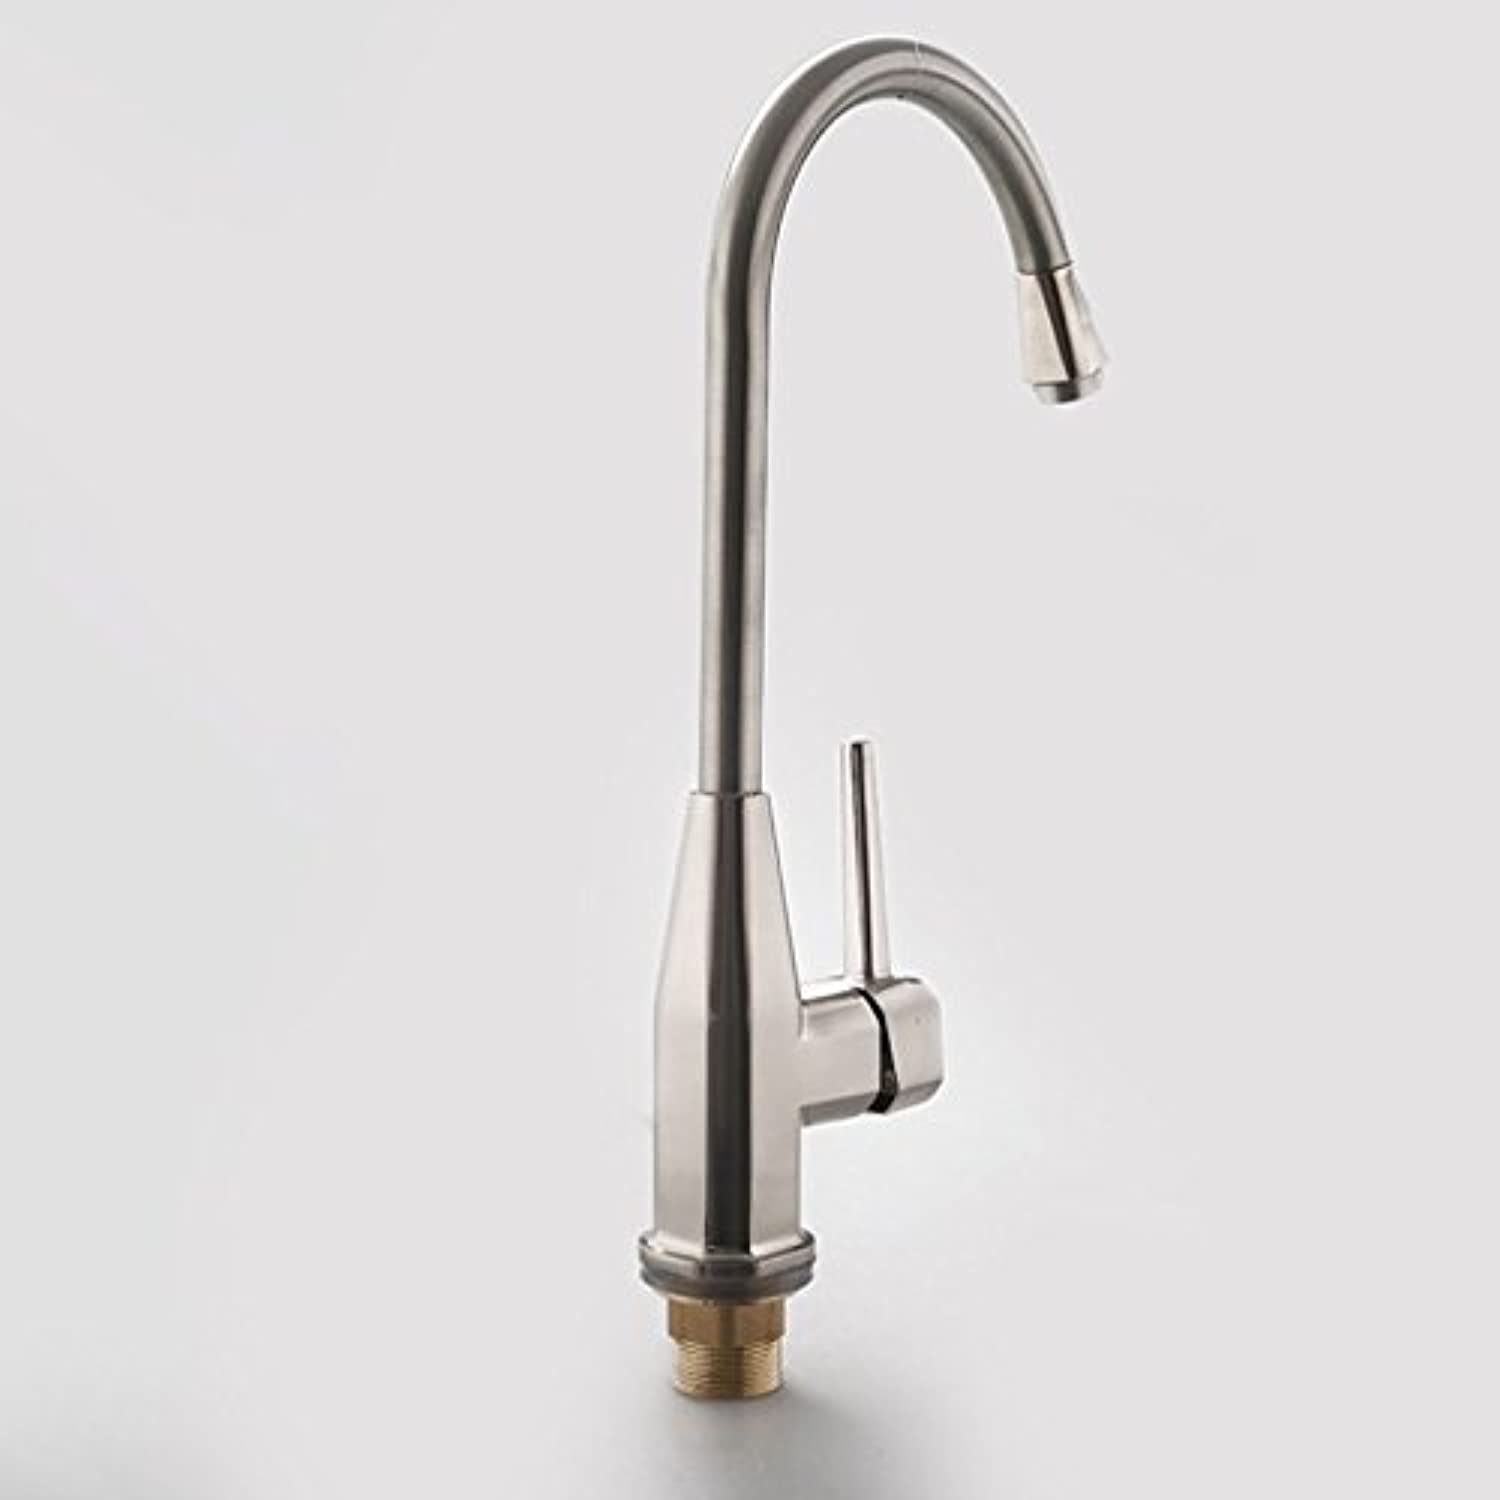 Commercial Single Lever Pull Down Kitchen Sink Faucet Brass Constructed Polished Stainless Steel Kitchen Faucet, Hot and Cold Sink Faucet, Swivel Laundry Sink Sink Faucet